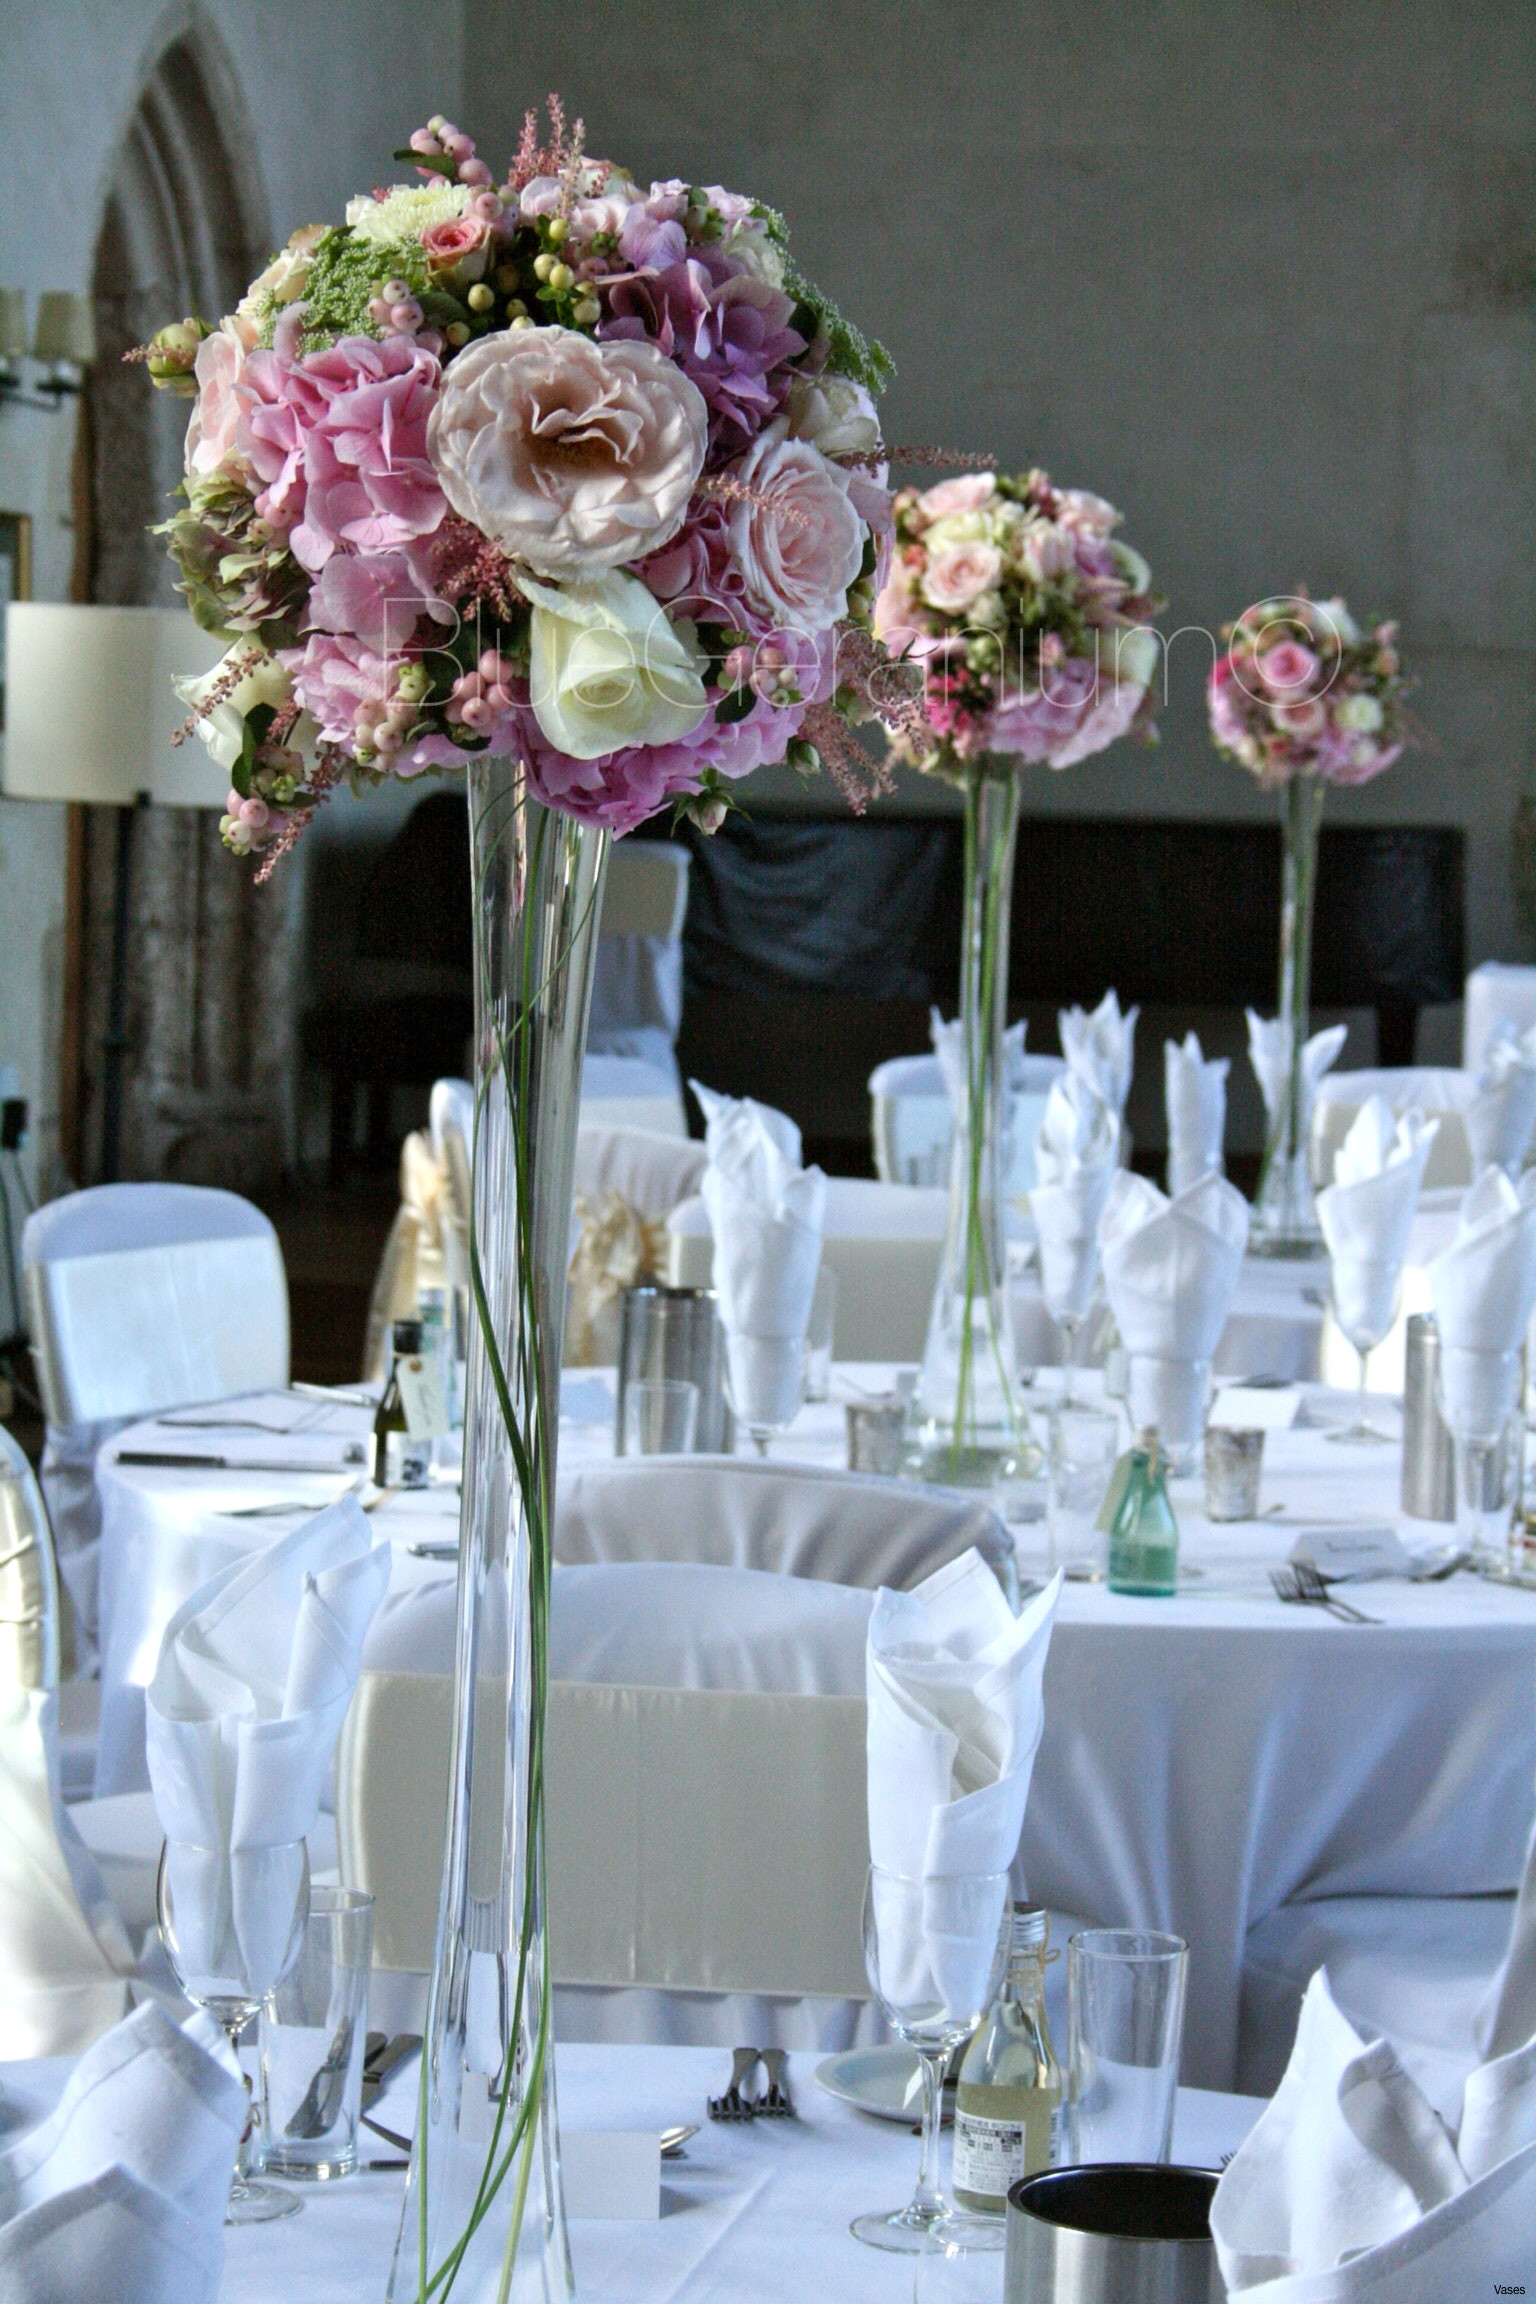 Tall Wedding Vases for Sale Of where to Buy Wedding Decorations New Living Room Vases Wedding Throughout Related Post